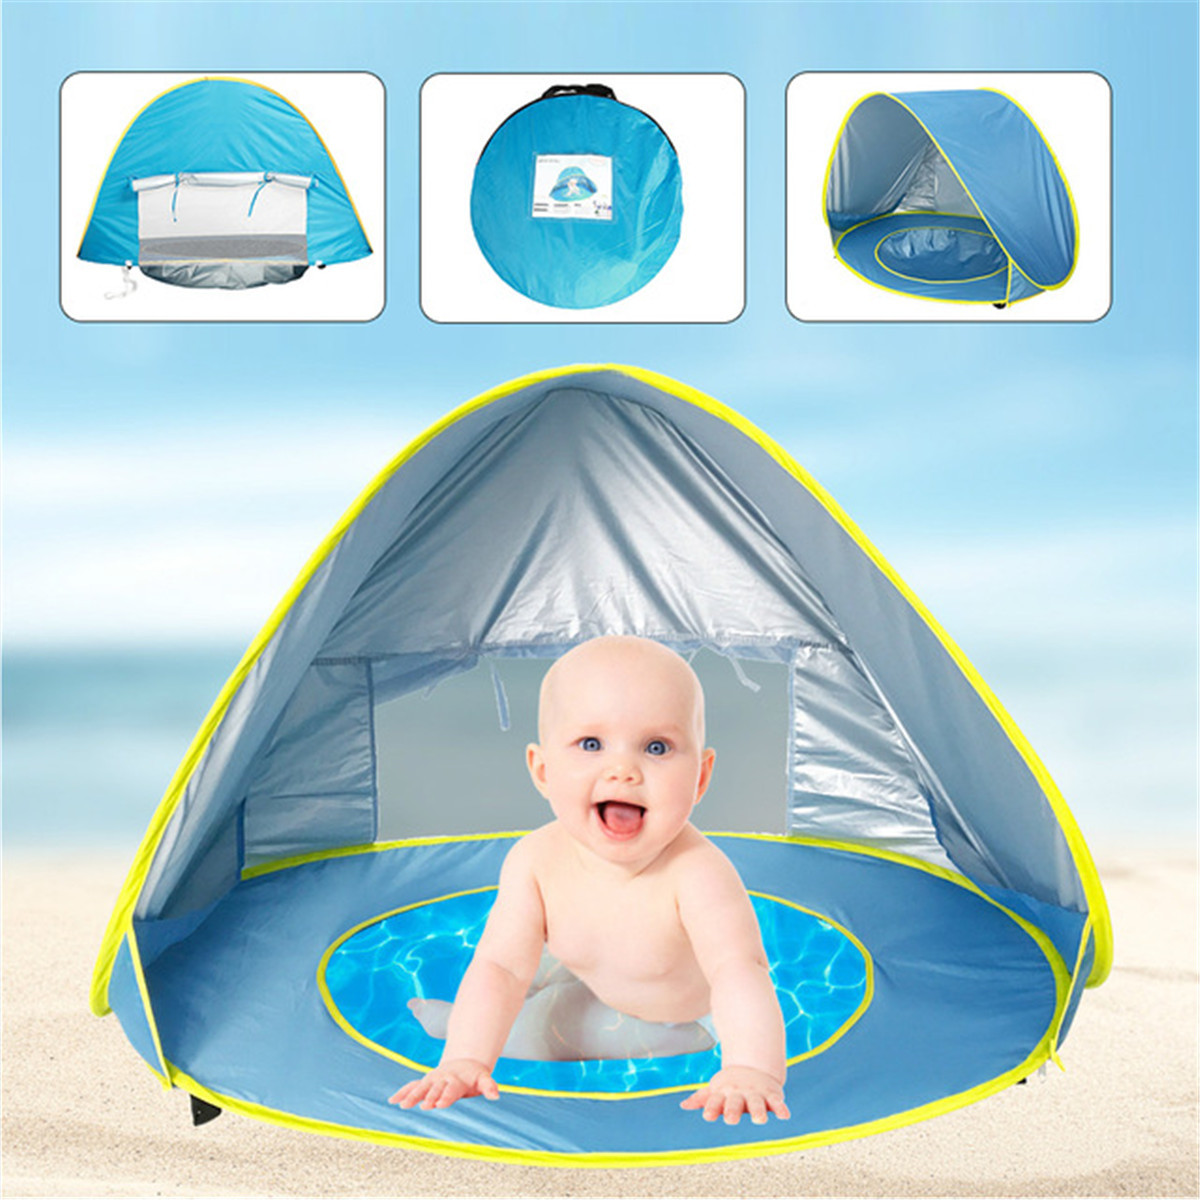 Portable Baby Beach Tent UV Protection Waterproof Shade Tent Pool Outdoor Beach Automatic Pop' Up Sun Shelter For Infant Kids